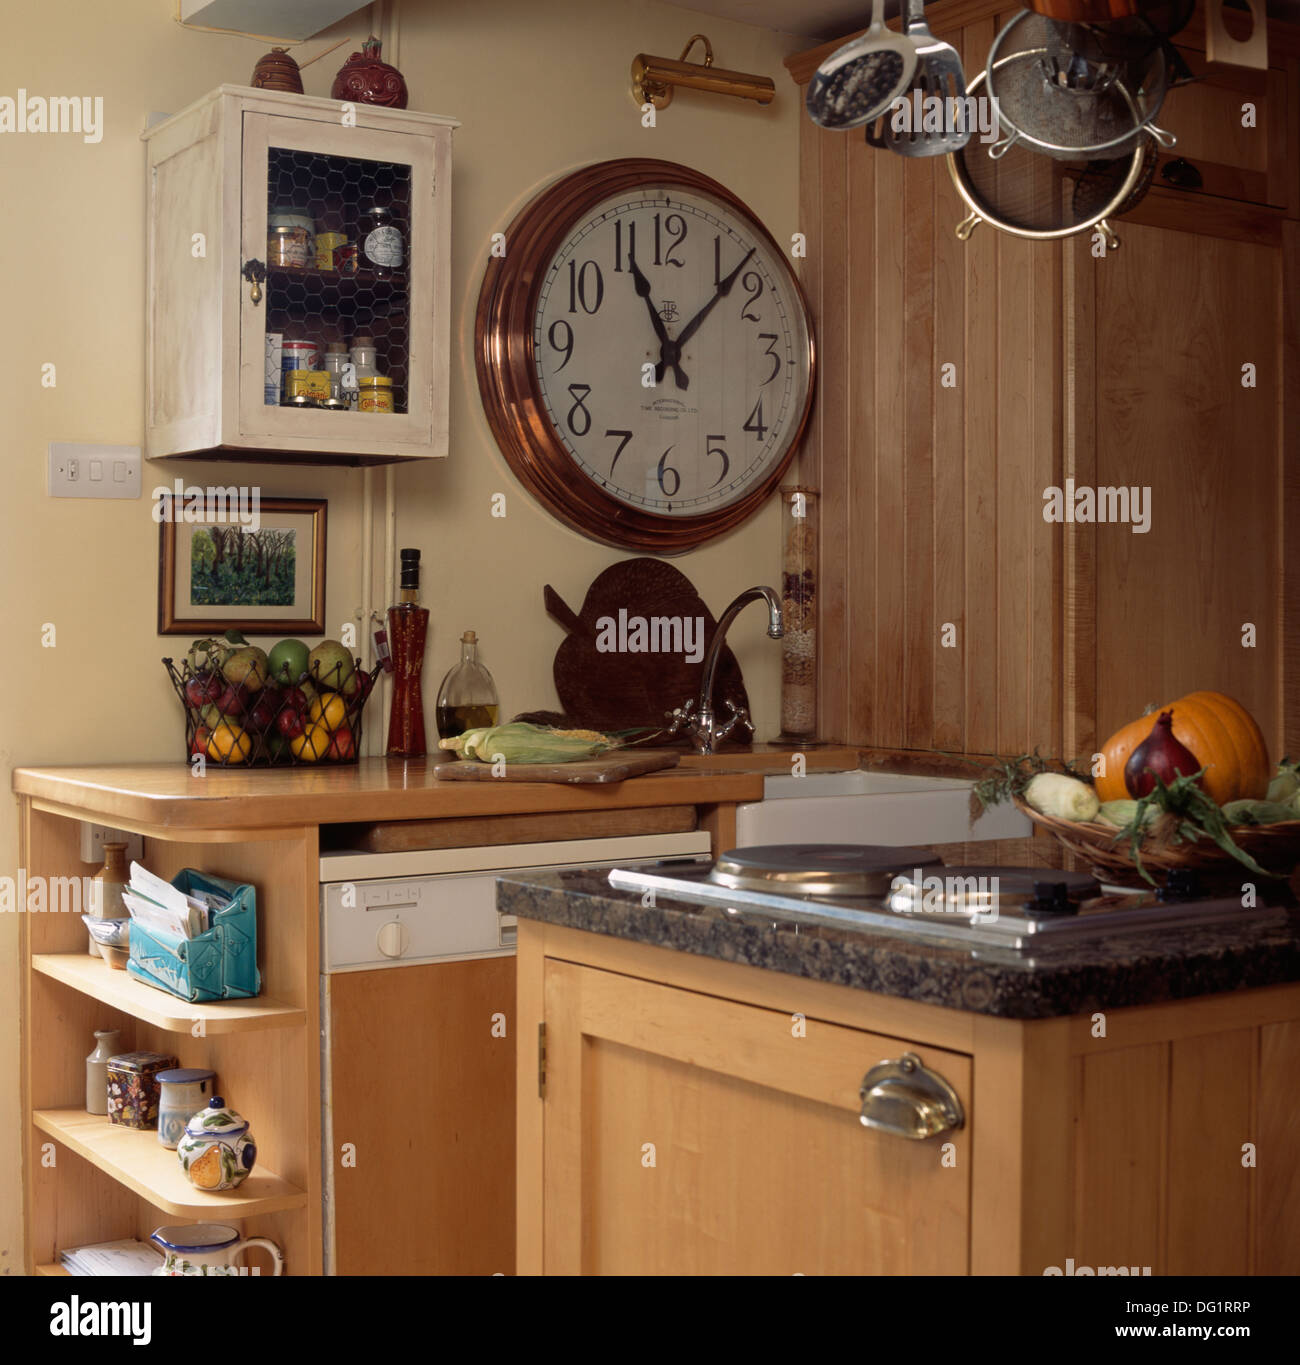 Where To Buy Country Kitchen Island With Sink And Dishwasher